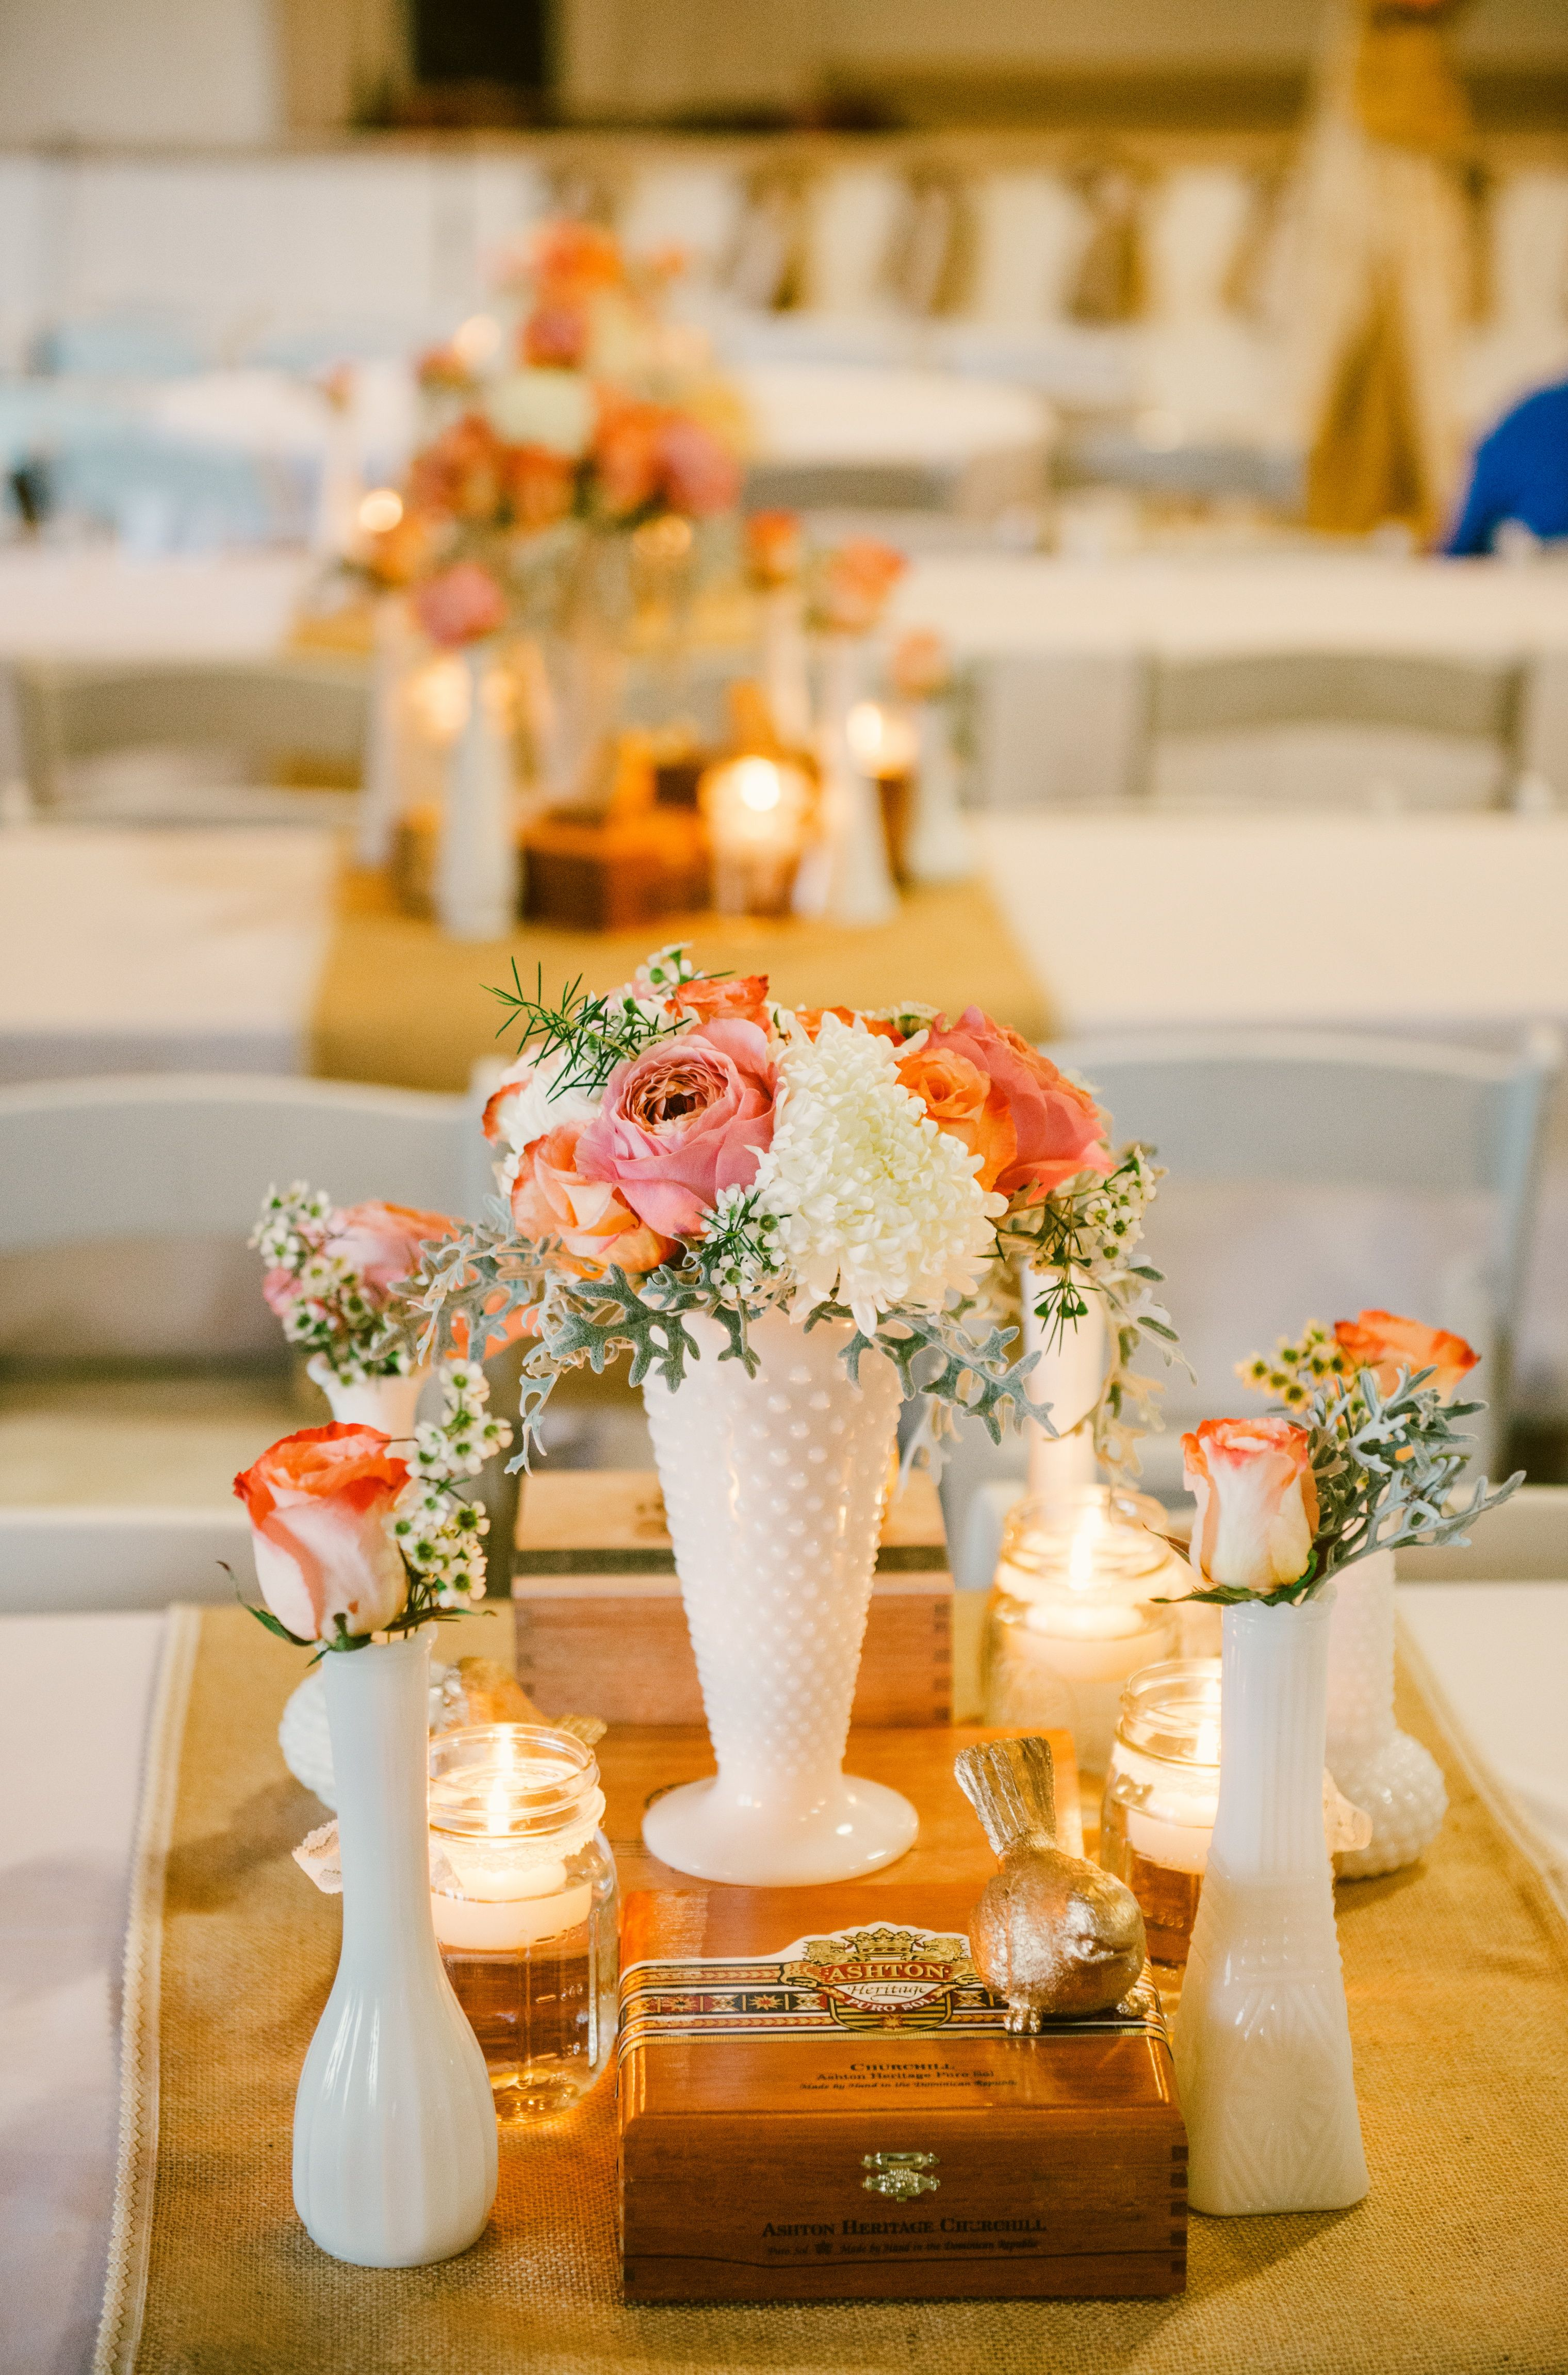 Centerpieces Collection Of Milk Glass Floating Candles In Mason